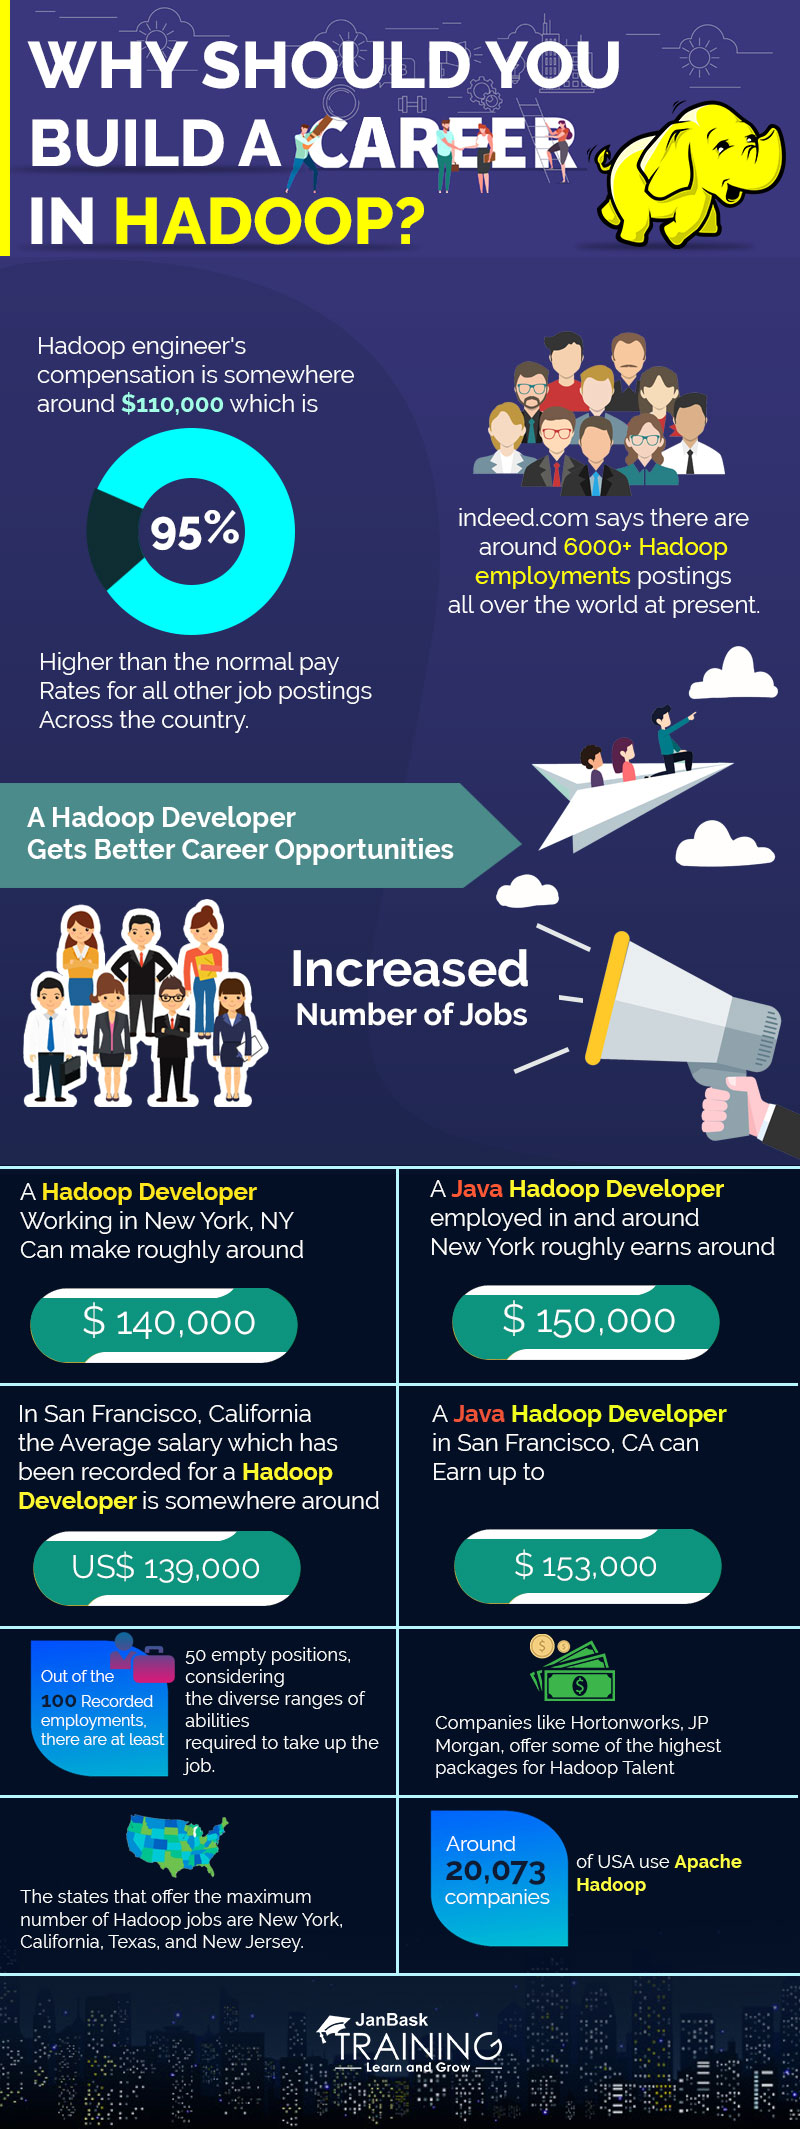 Why Should You Build a Career In Hadoop?